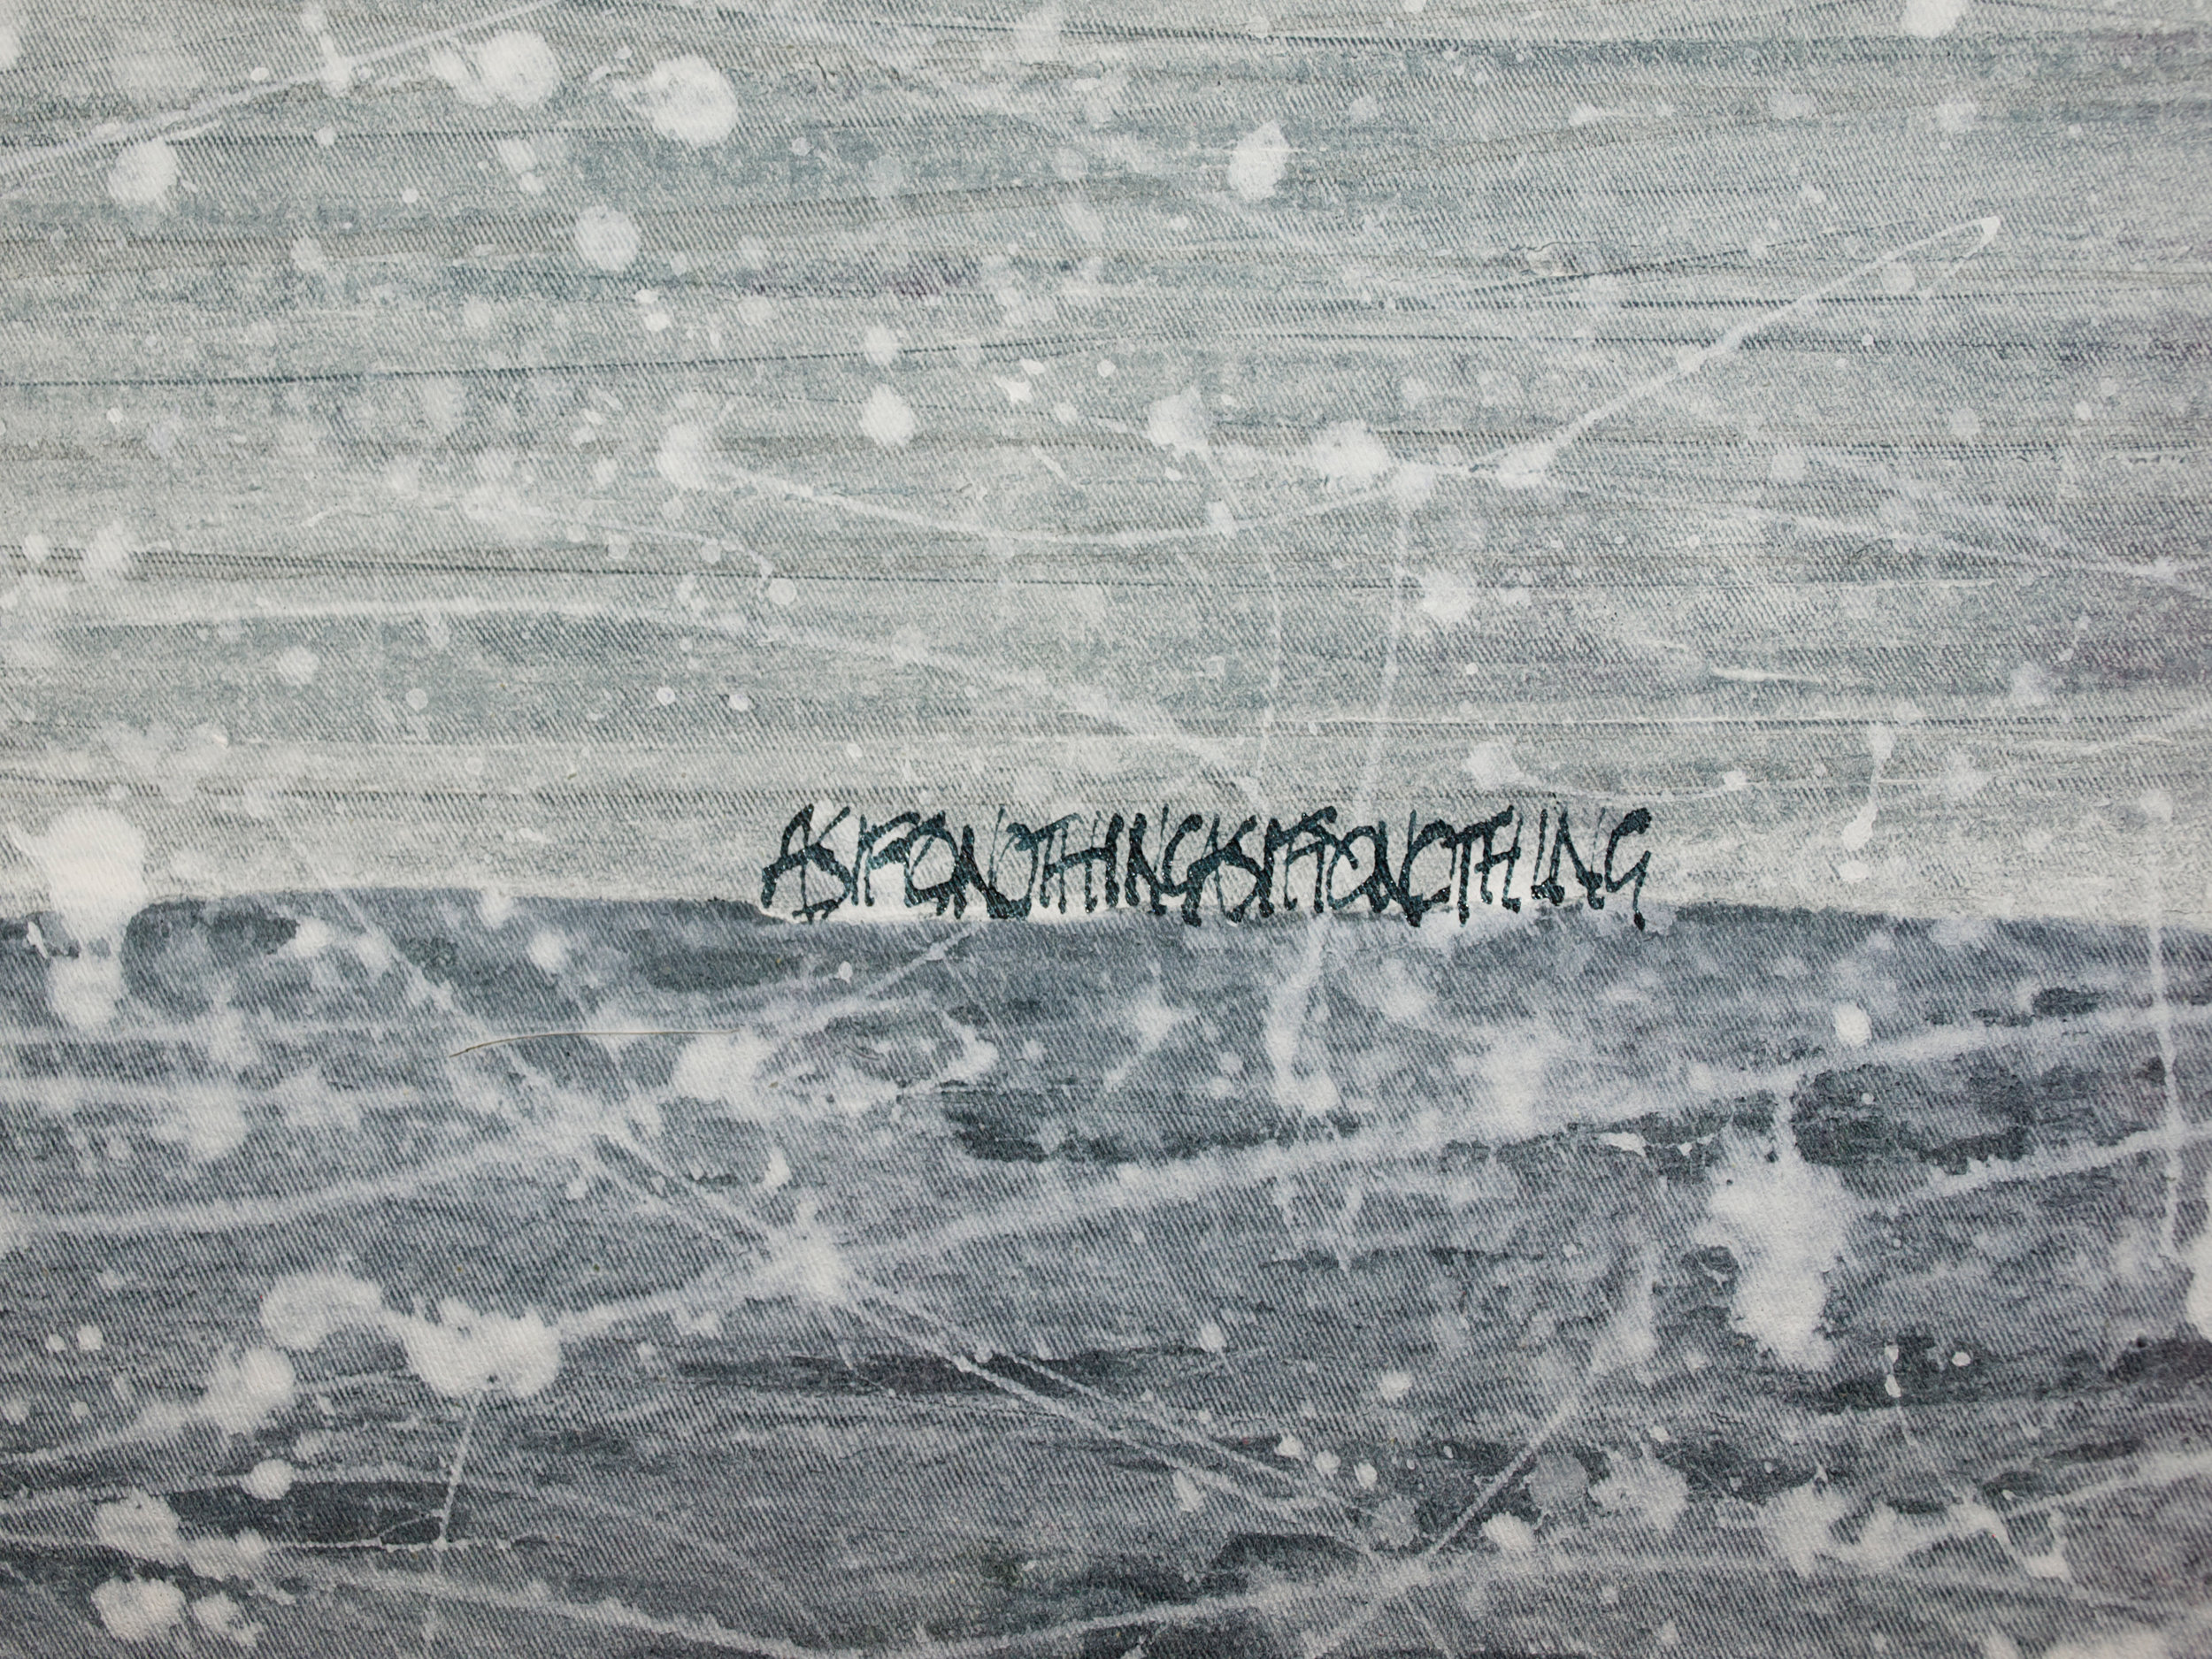 'Ocean', detail. Cotton, acrylic paint, India Ink